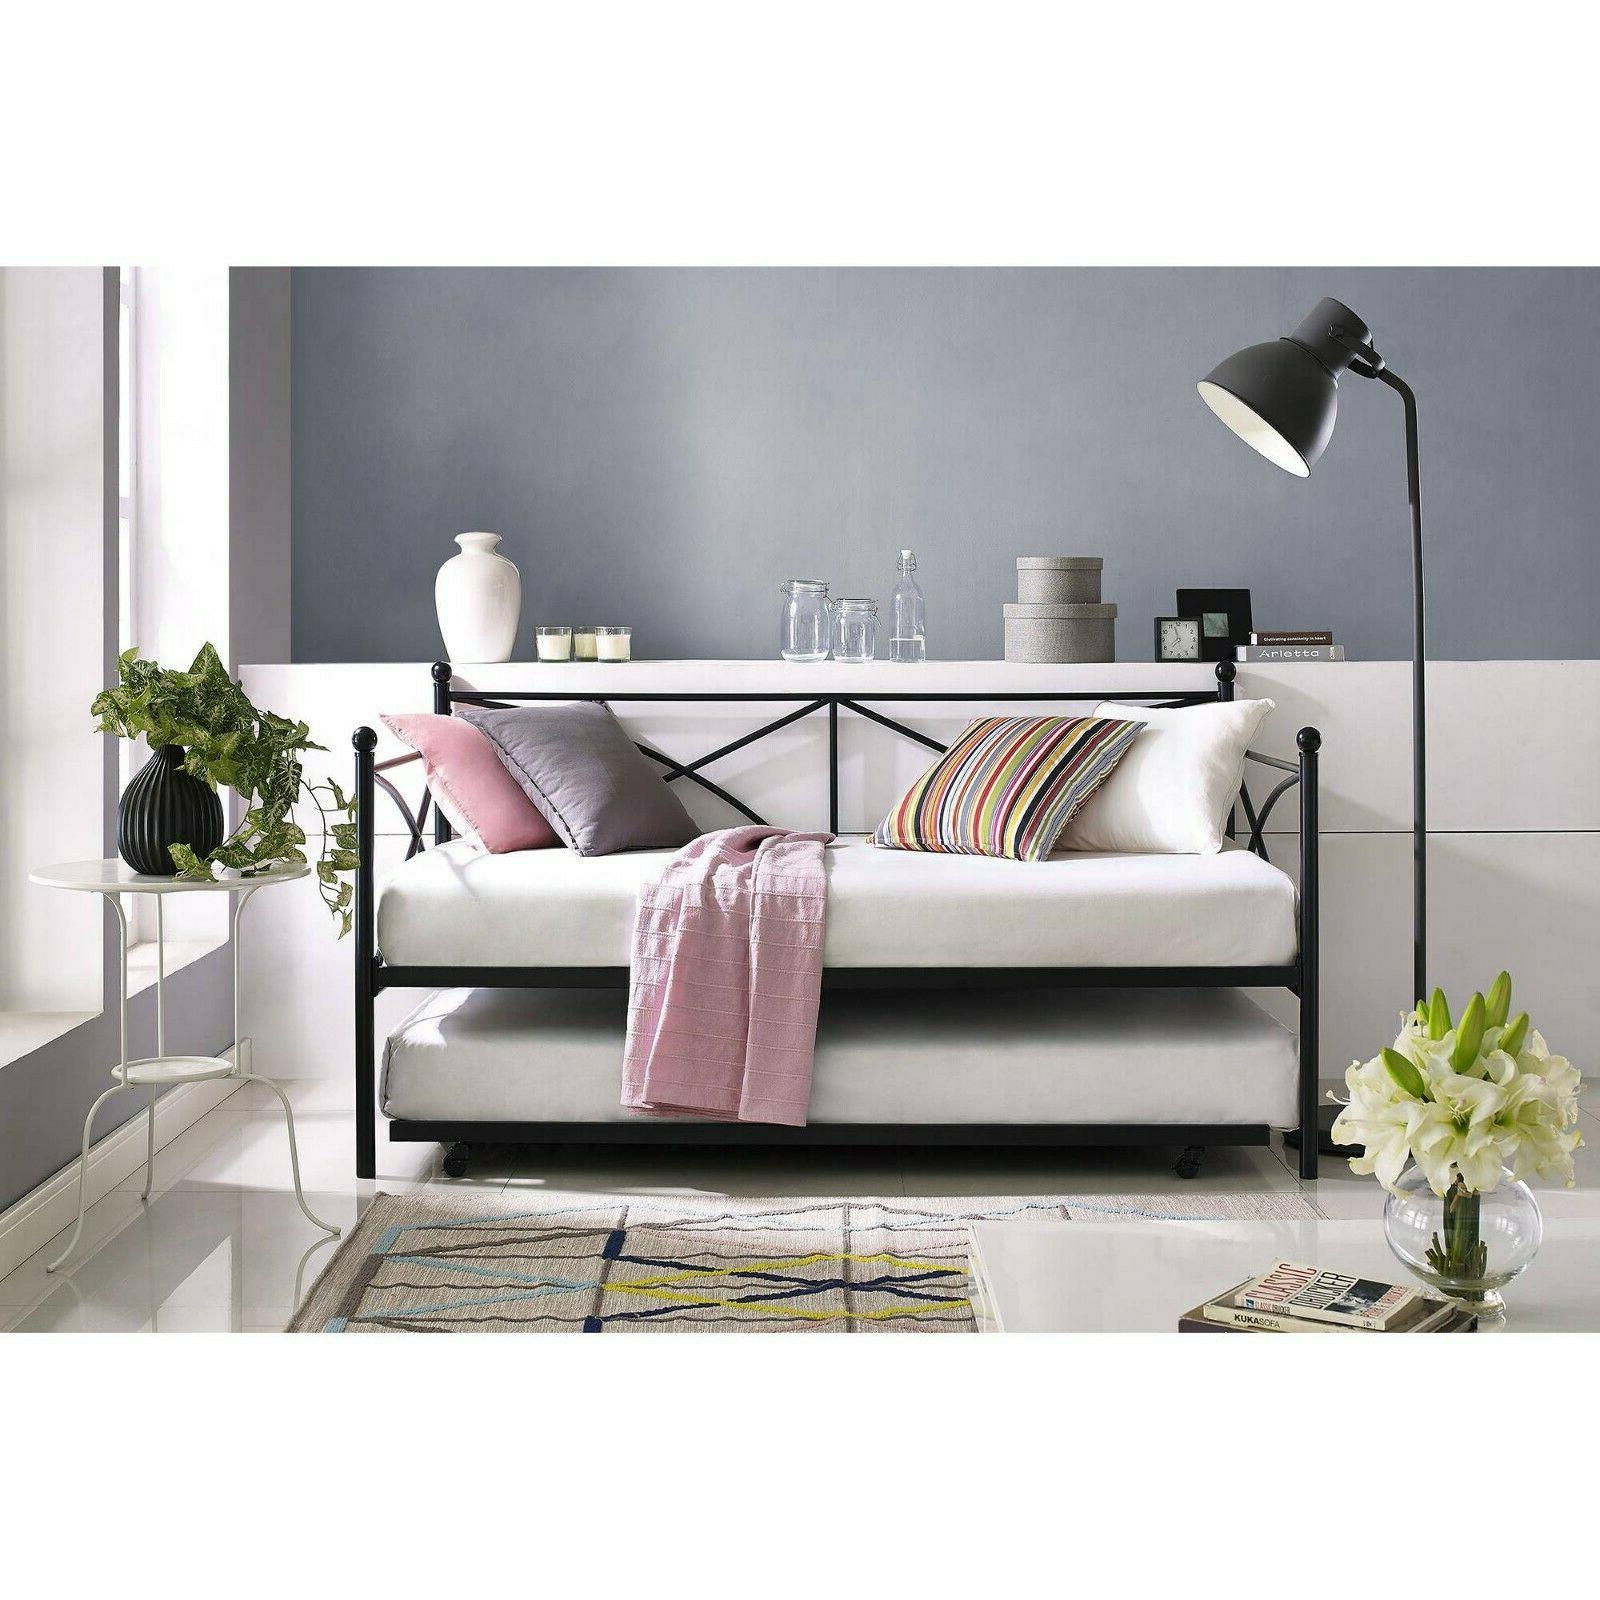 Metal Daybed With Trundle Twin Size Roll Out Day Bed Guest M